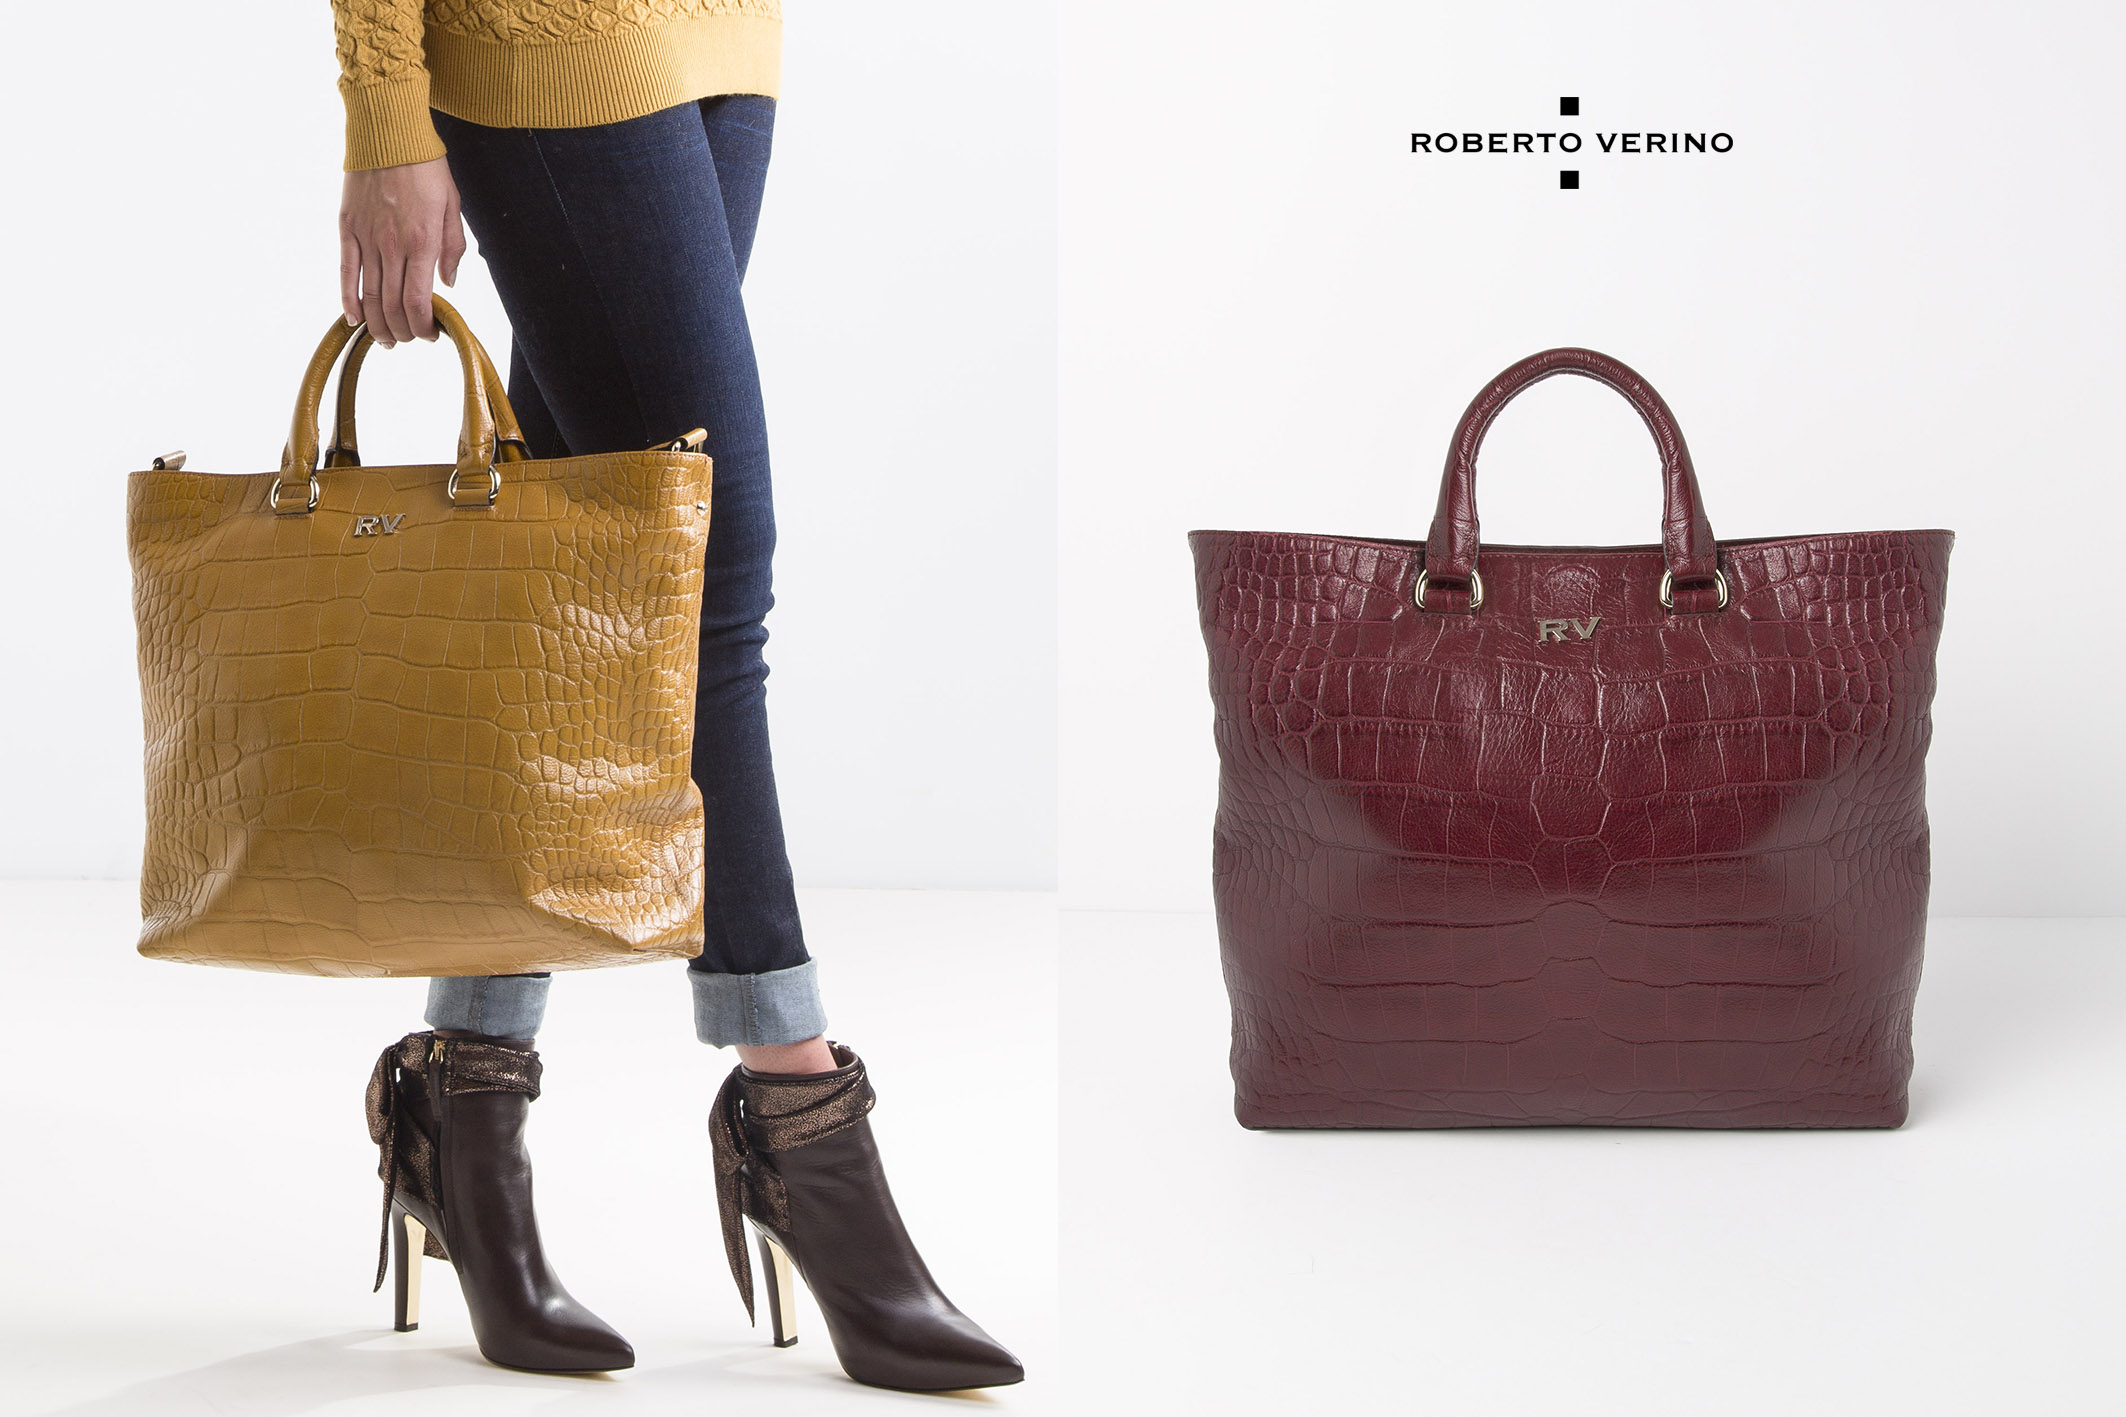 Scarlet leather tote bag - Roberto Vernio